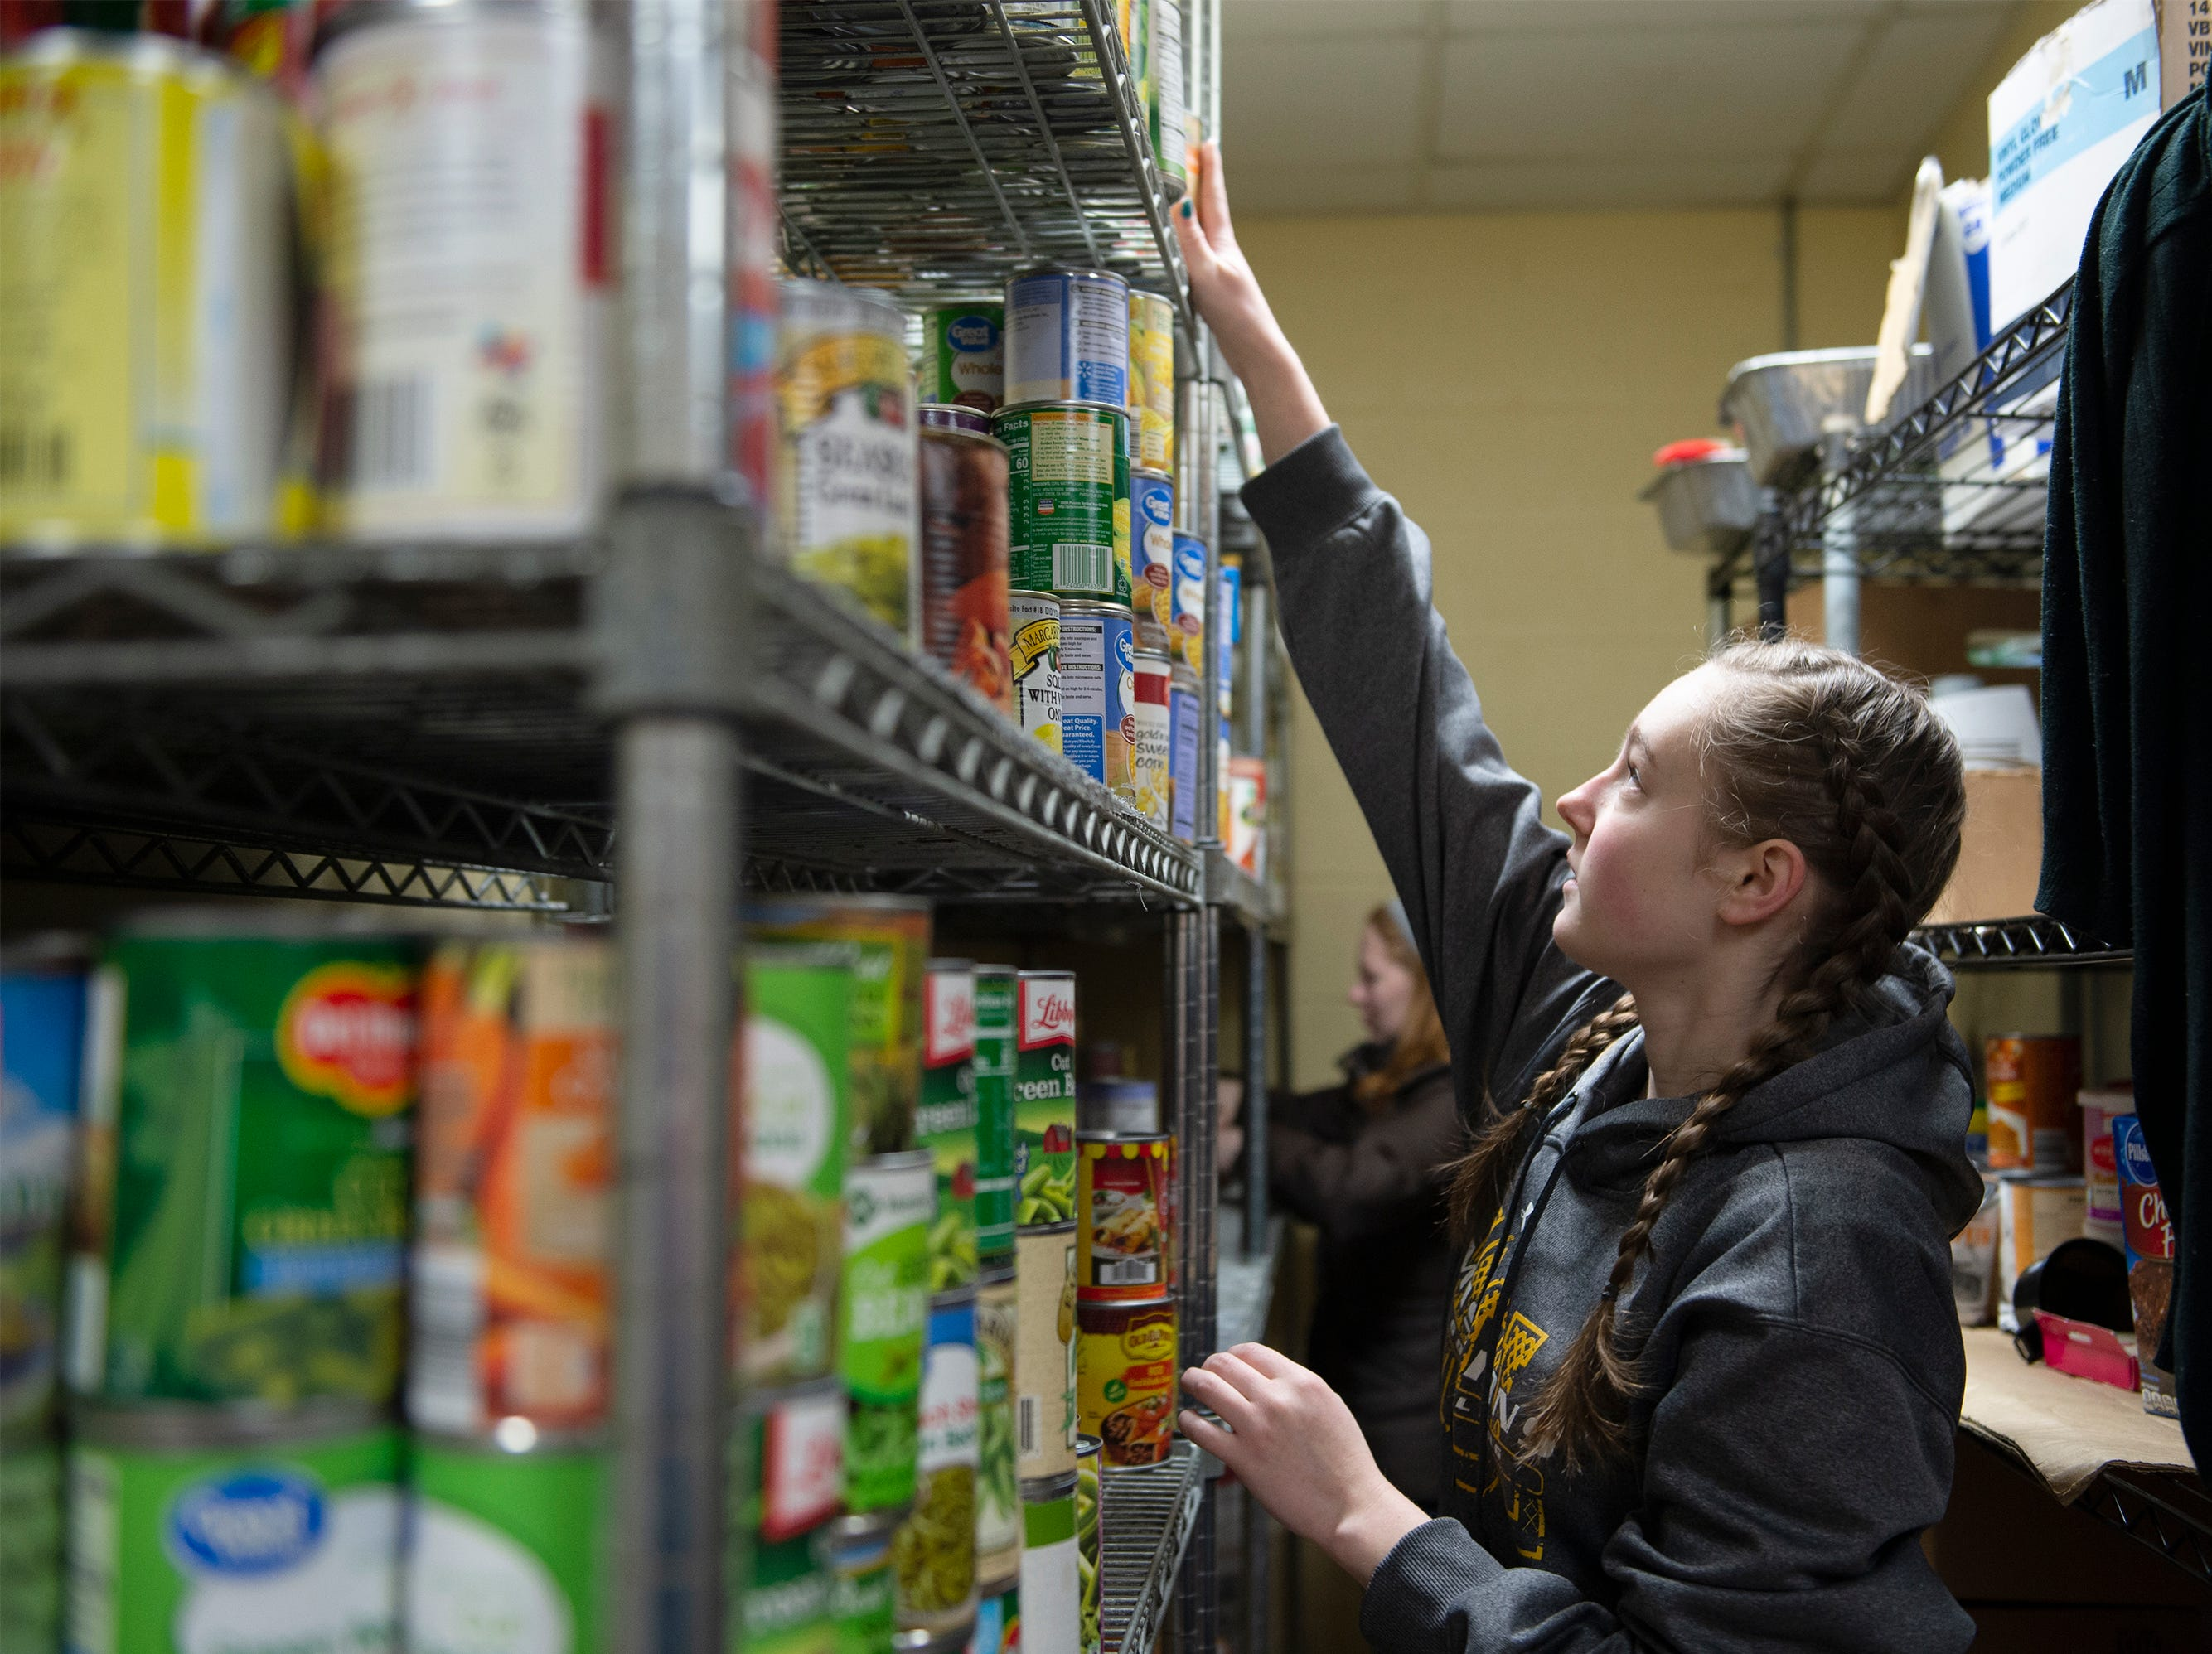 Bob Jones University sophomore Sarah Needham stacks donated foods on shelves in Miracle HillÕs Greenville Rescue Mission on Martin Luther King, Jr. Day Monday, Jan. 21, 2019.